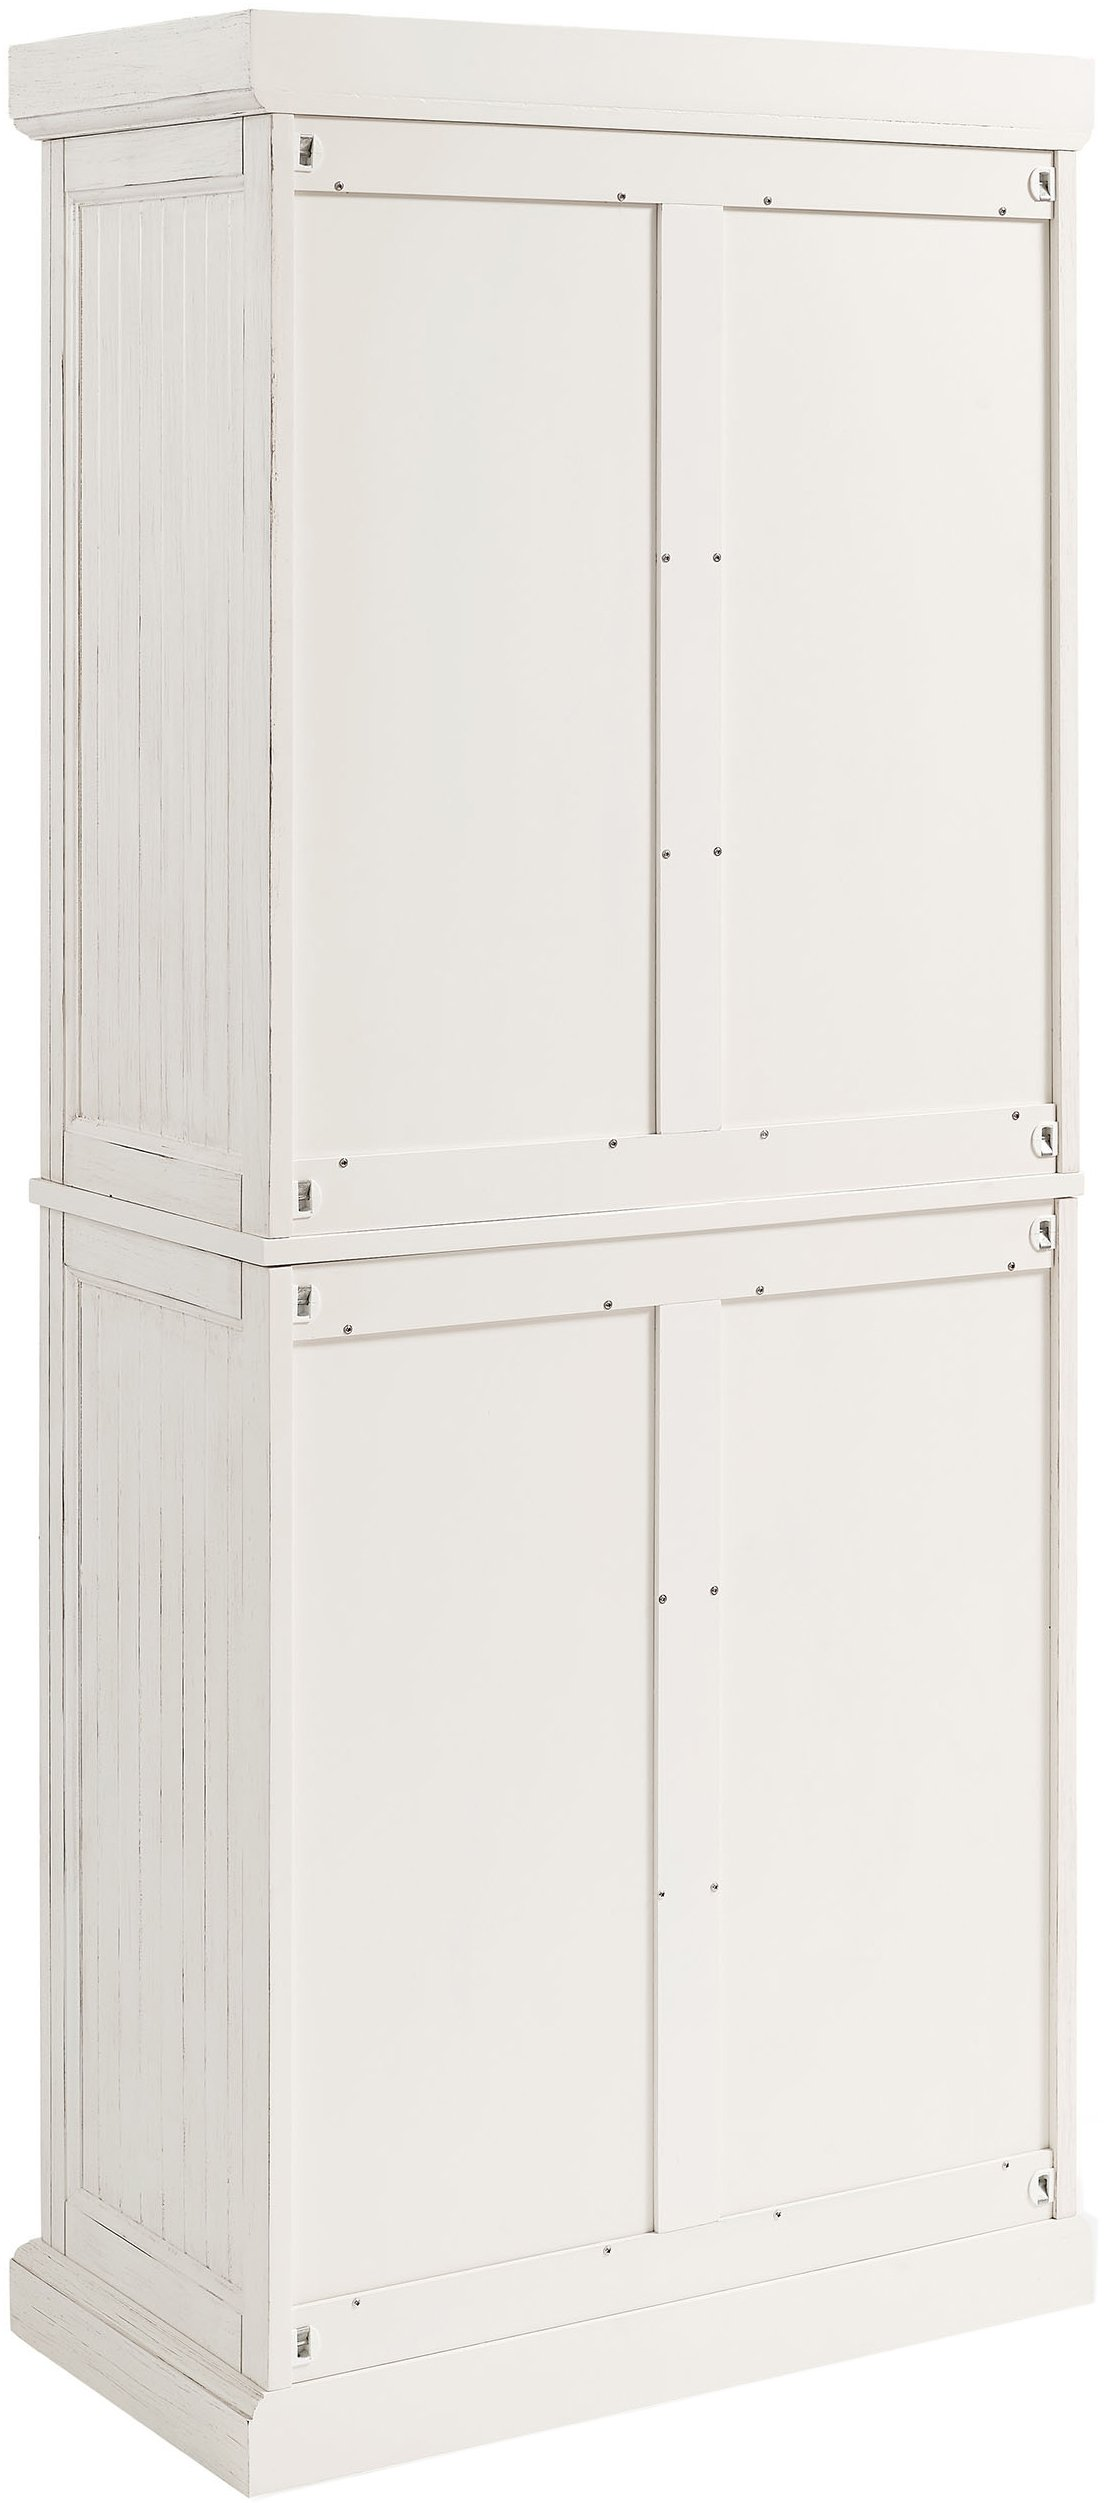 Crosley Furniture Seaside Kitchen Pantry Cabinet - Distressed White by Crosley Furniture (Image #13)